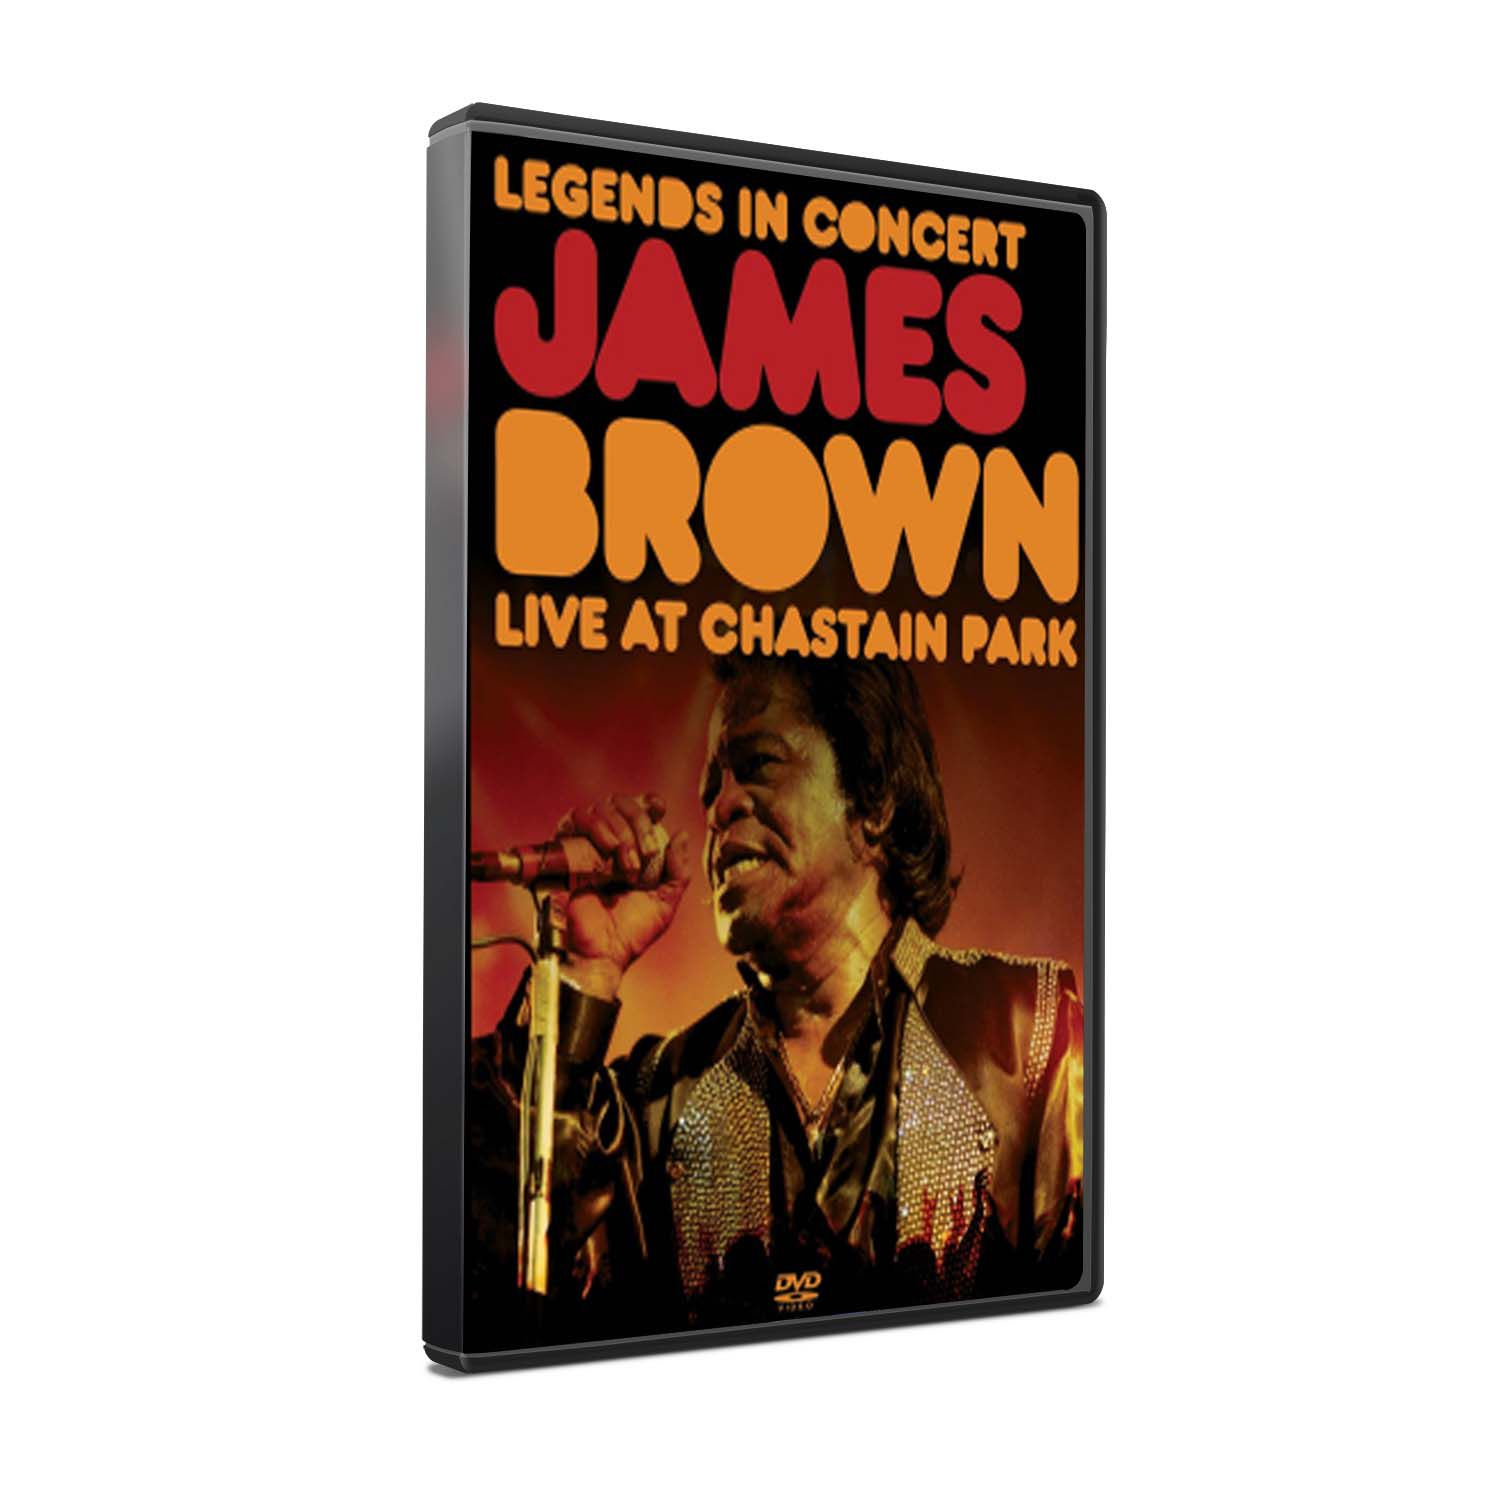 DVD JAMES BROWN - LIVE AT CHASTAIN PARK